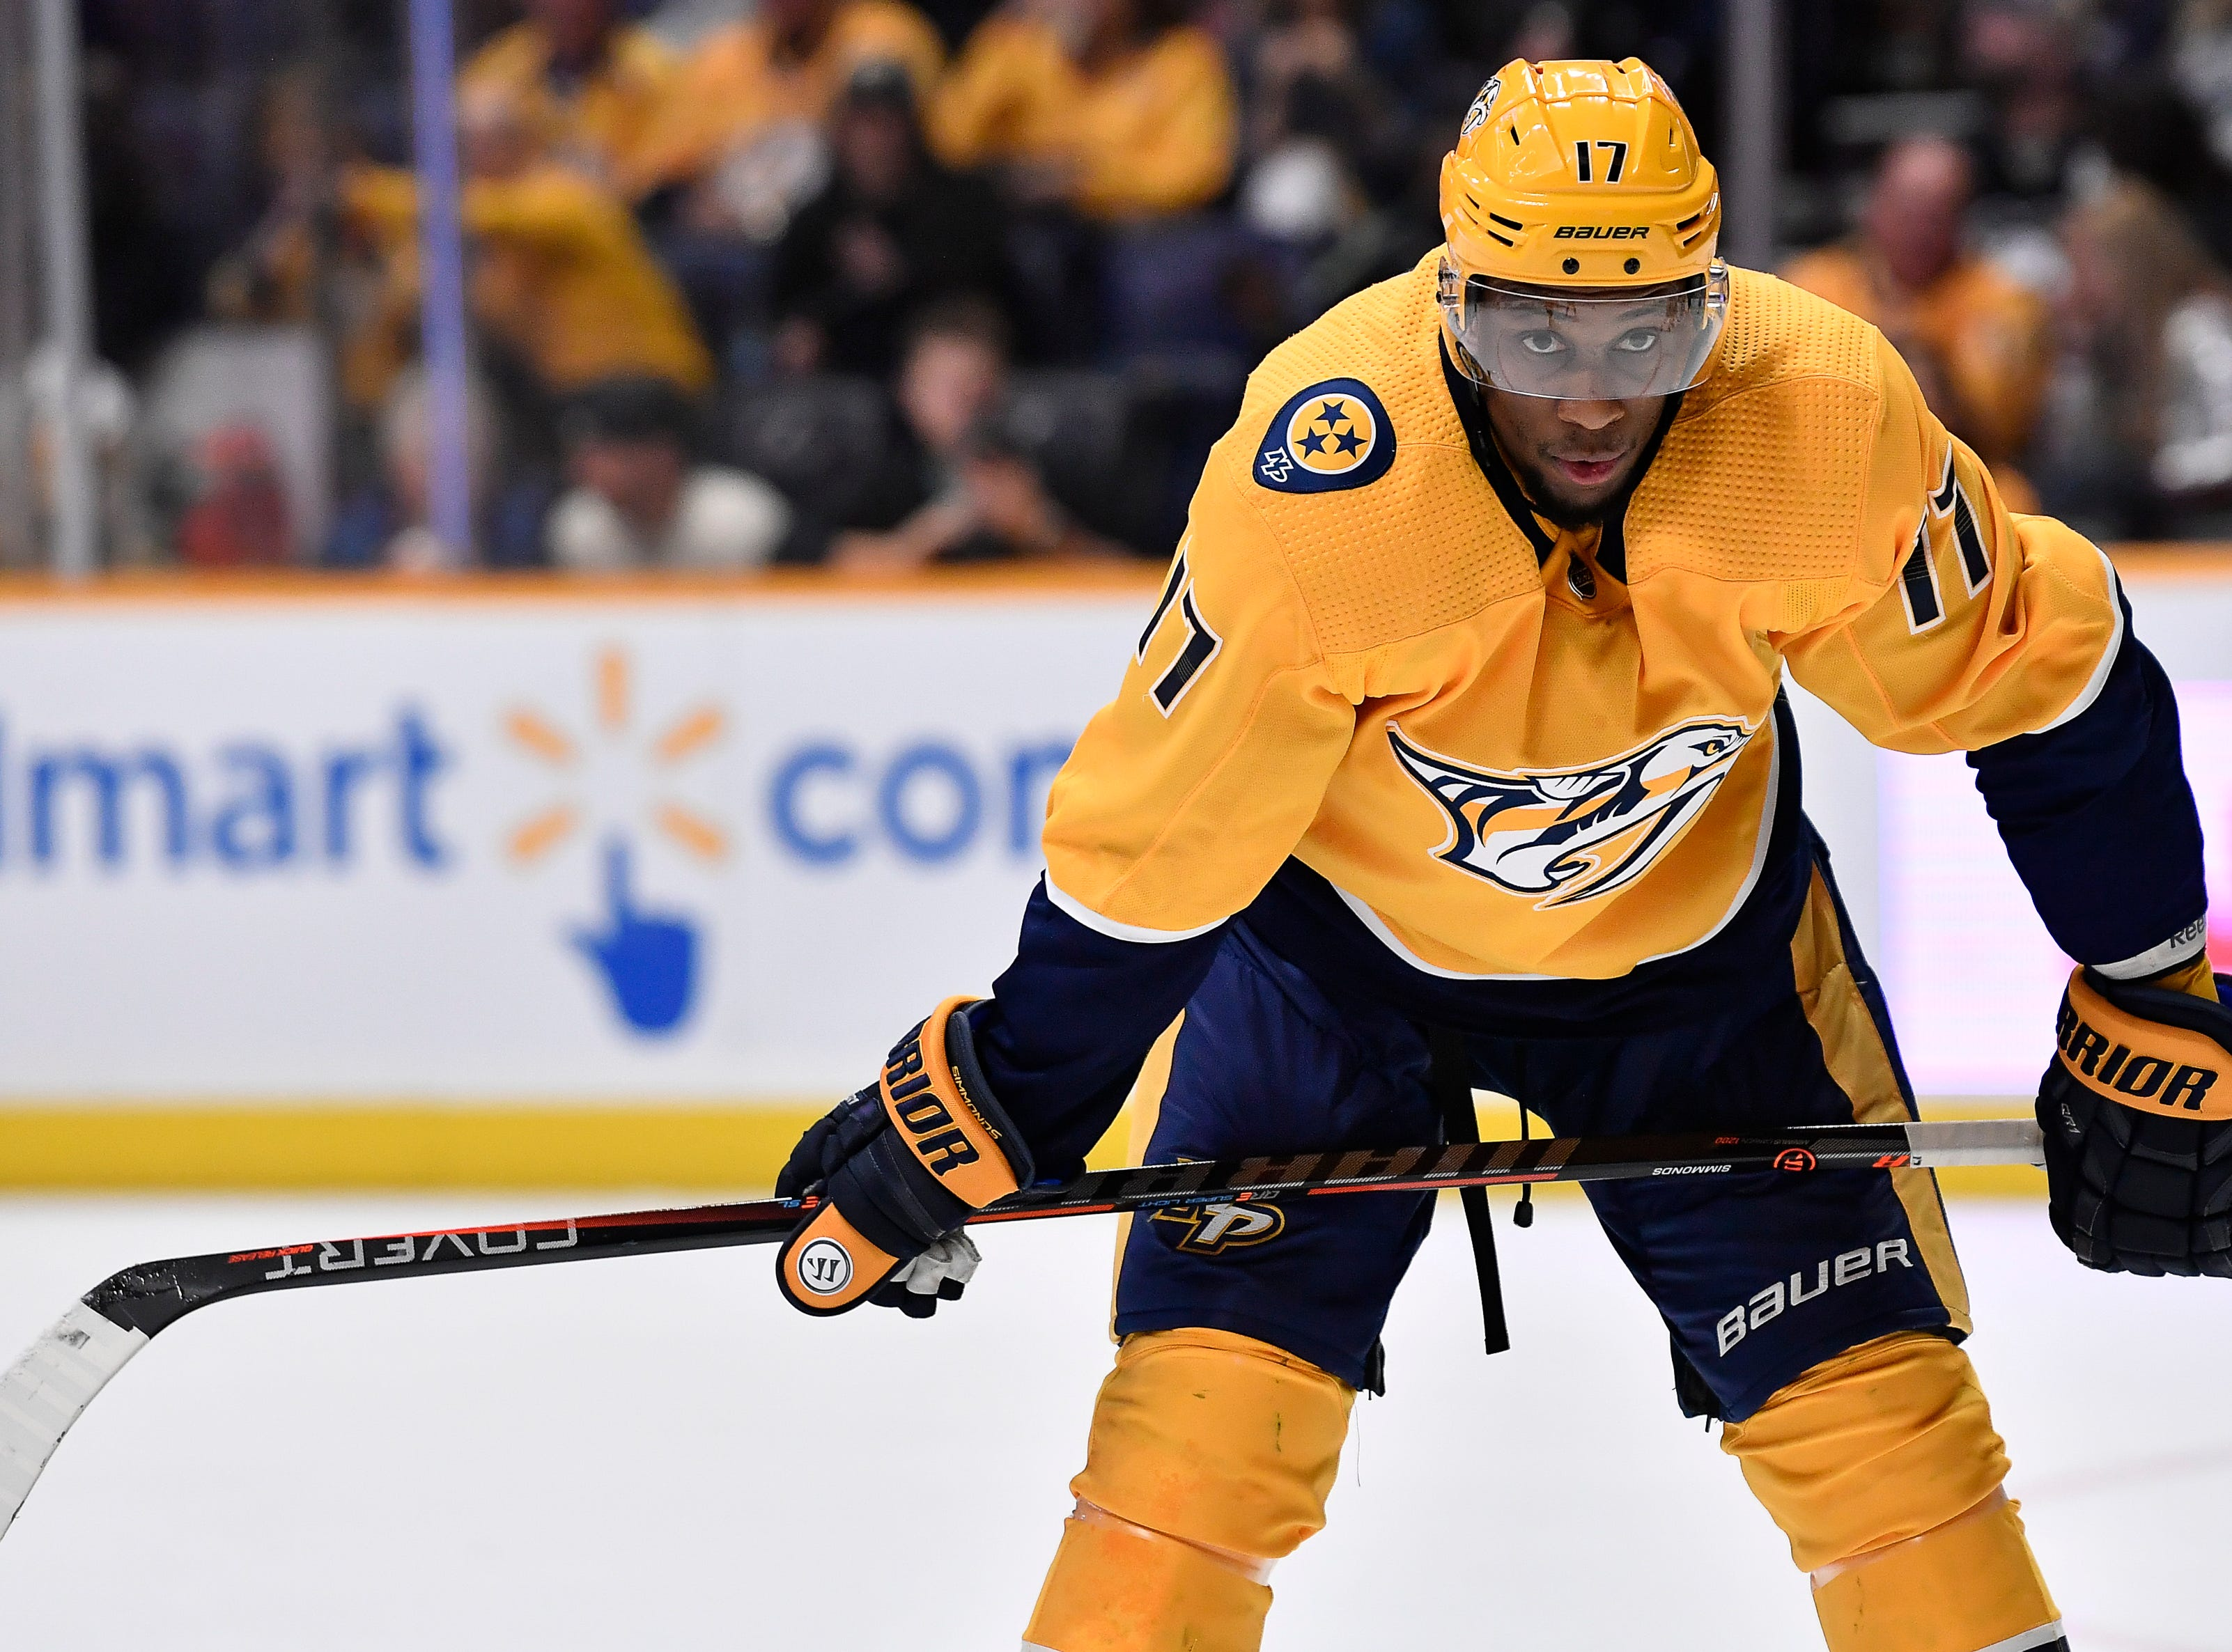 Predators right wing Wayne Simmonds (17) waits for play to begin during the first period against the Penguins at Bridgestone Arena Thursday, March 21, 2019 in Nashville, Tenn.